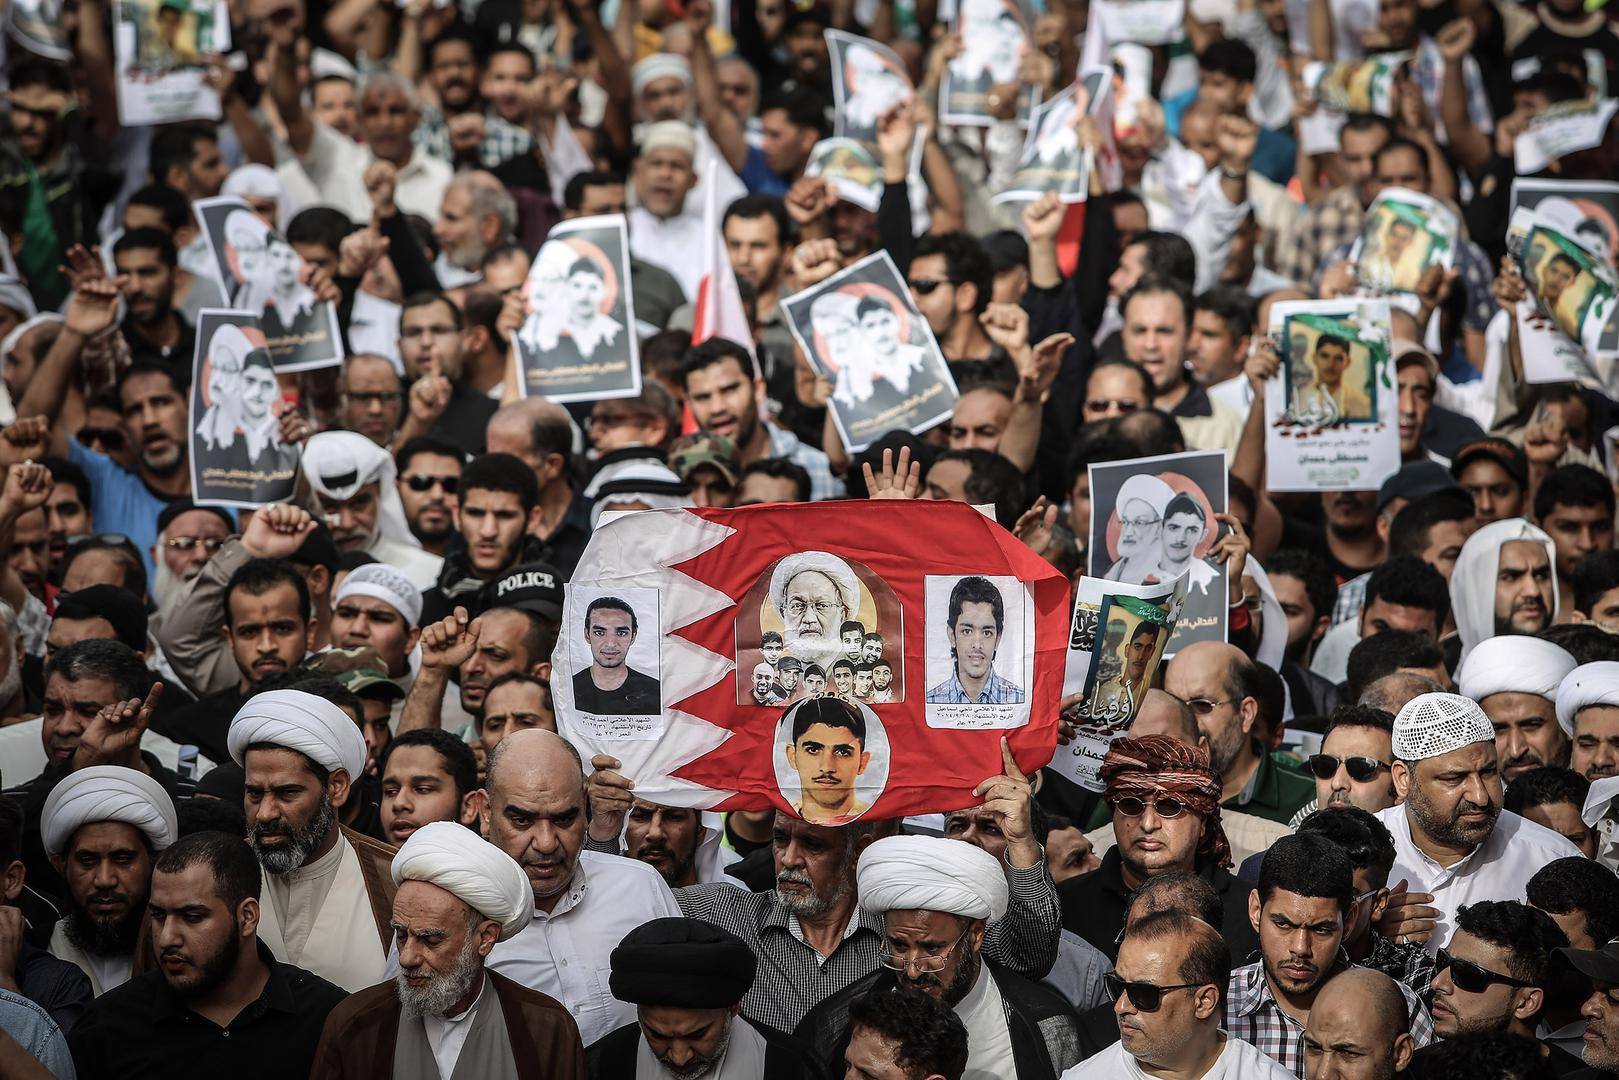 Nine Years After Bahrain's Uprising, Its Human Rights Crisis Has Only Worsened